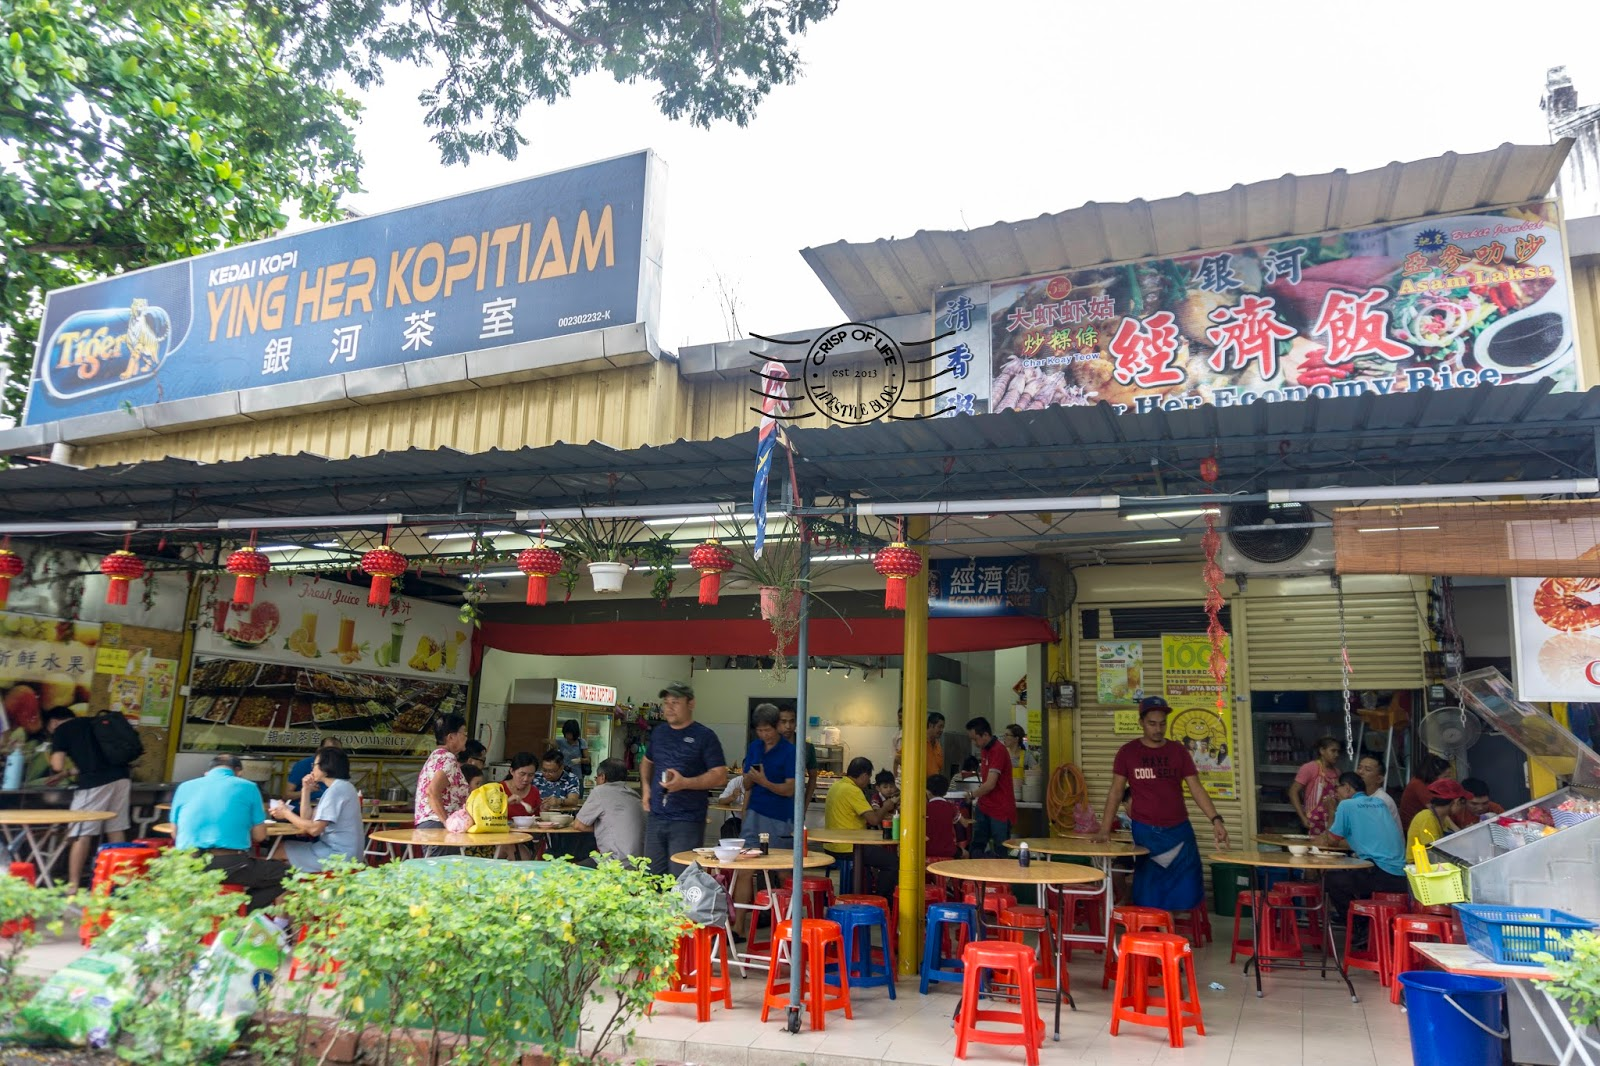 Char Koay Teow & Economy Rice @ Ying Her Kopitiam, Jalan Macalister Georgetown, Penang